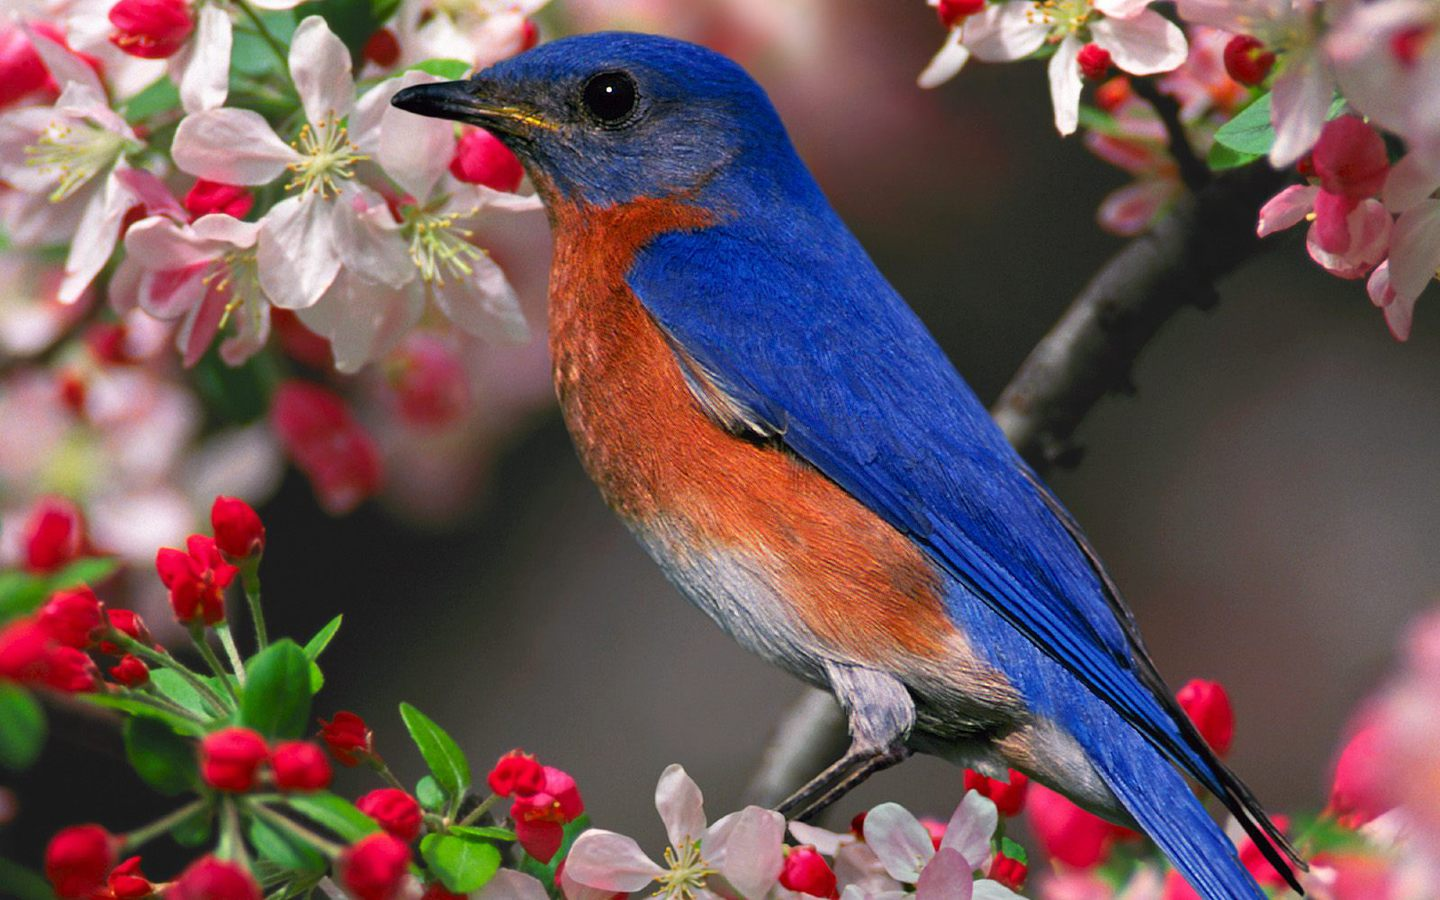 Popular Wallpaper Horse Colorful - bluebird-flower-wallpaper  Snapshot_277039.jpg